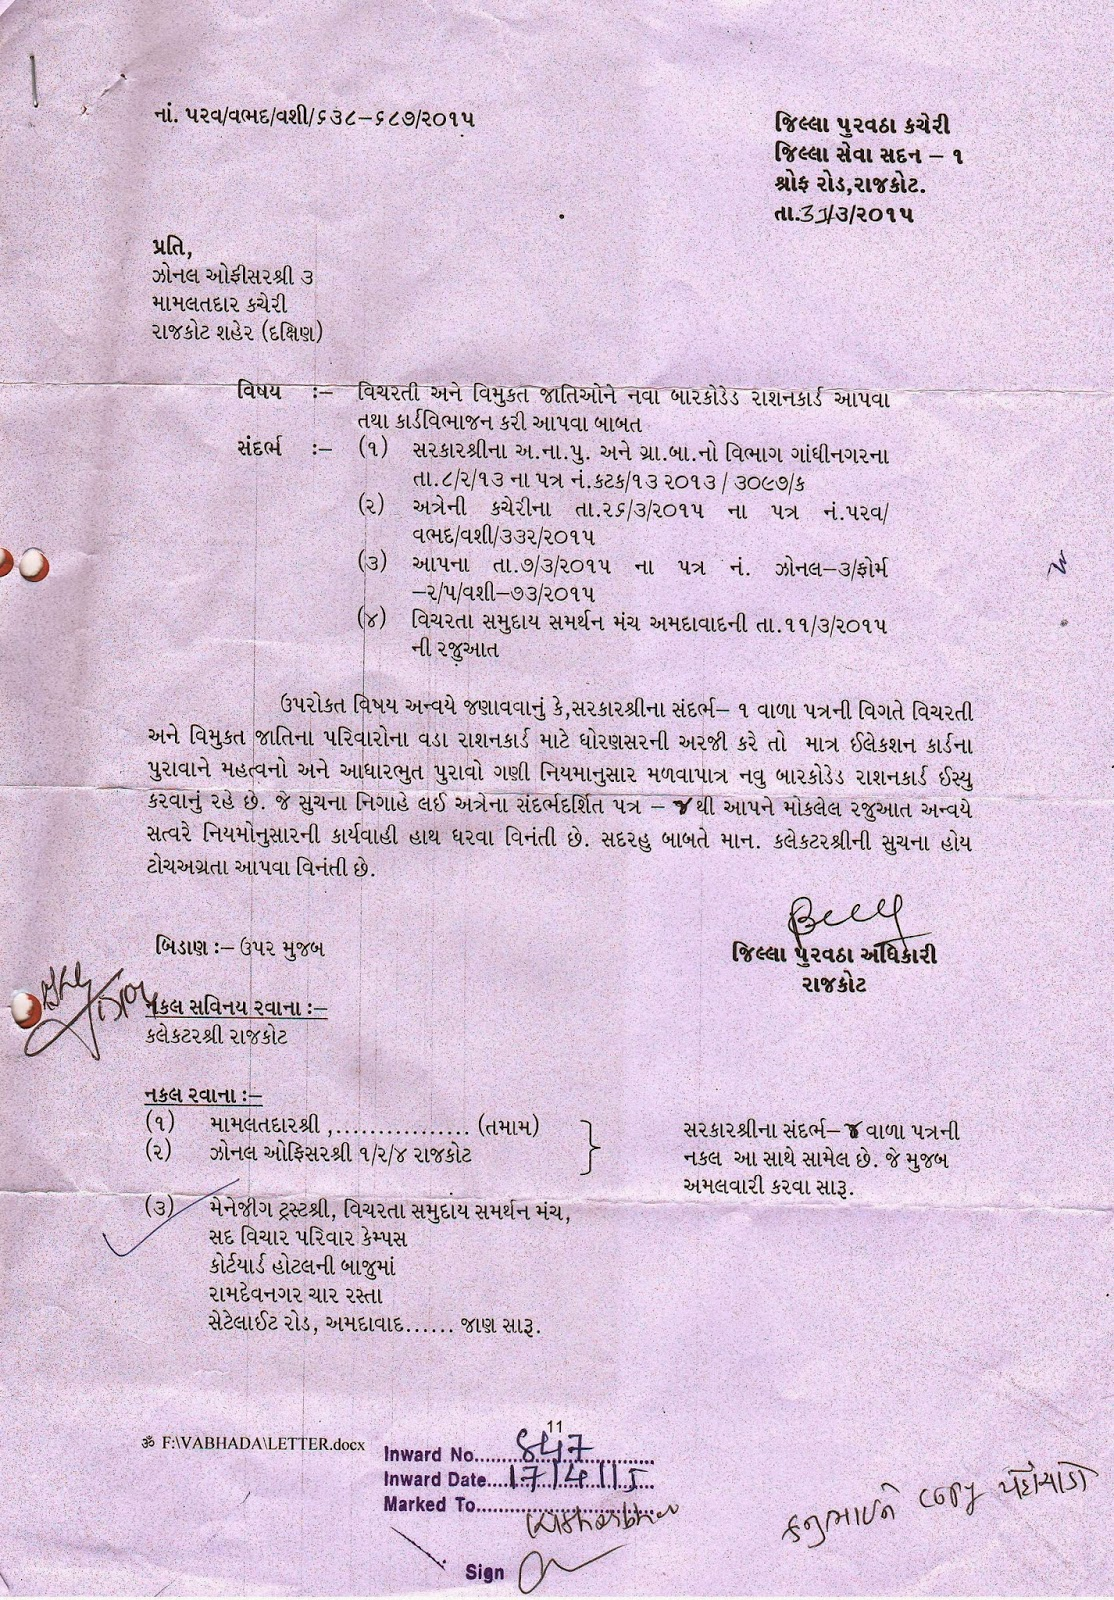 Letter From District Collector after VSSM Efforts